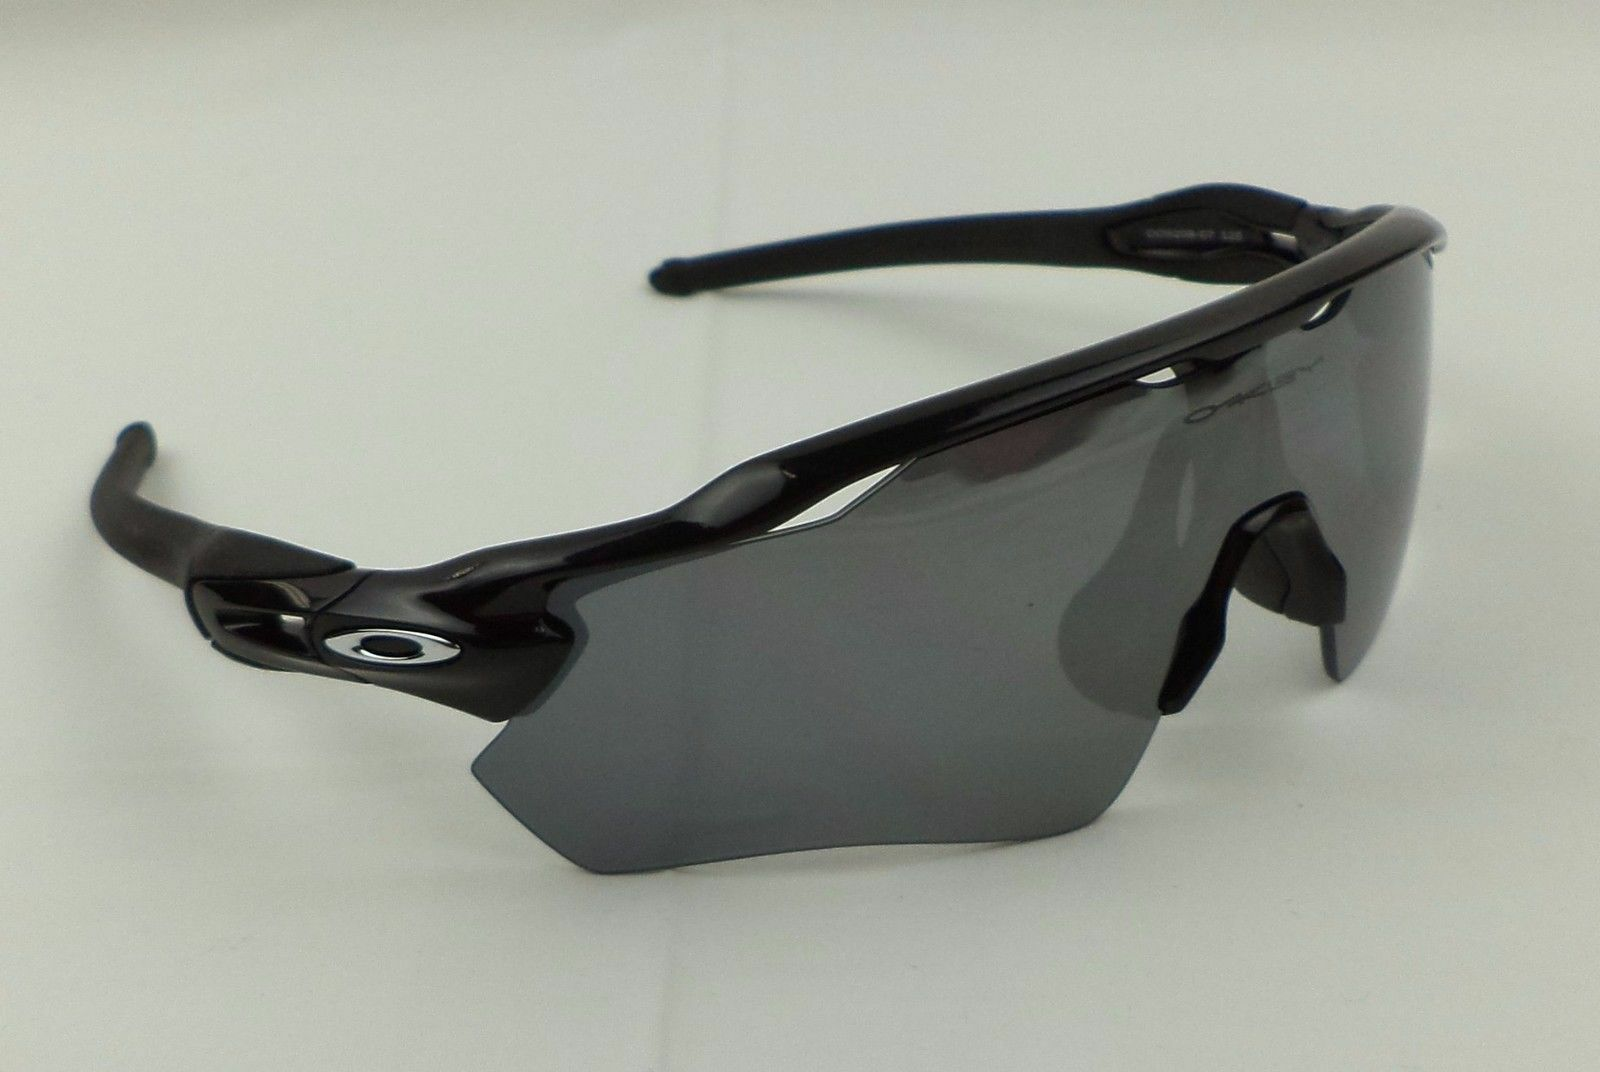 e24c33031366e Oakley Radar EV Path Sunglasses Black  black Iridium Polarized Lens for  sale online